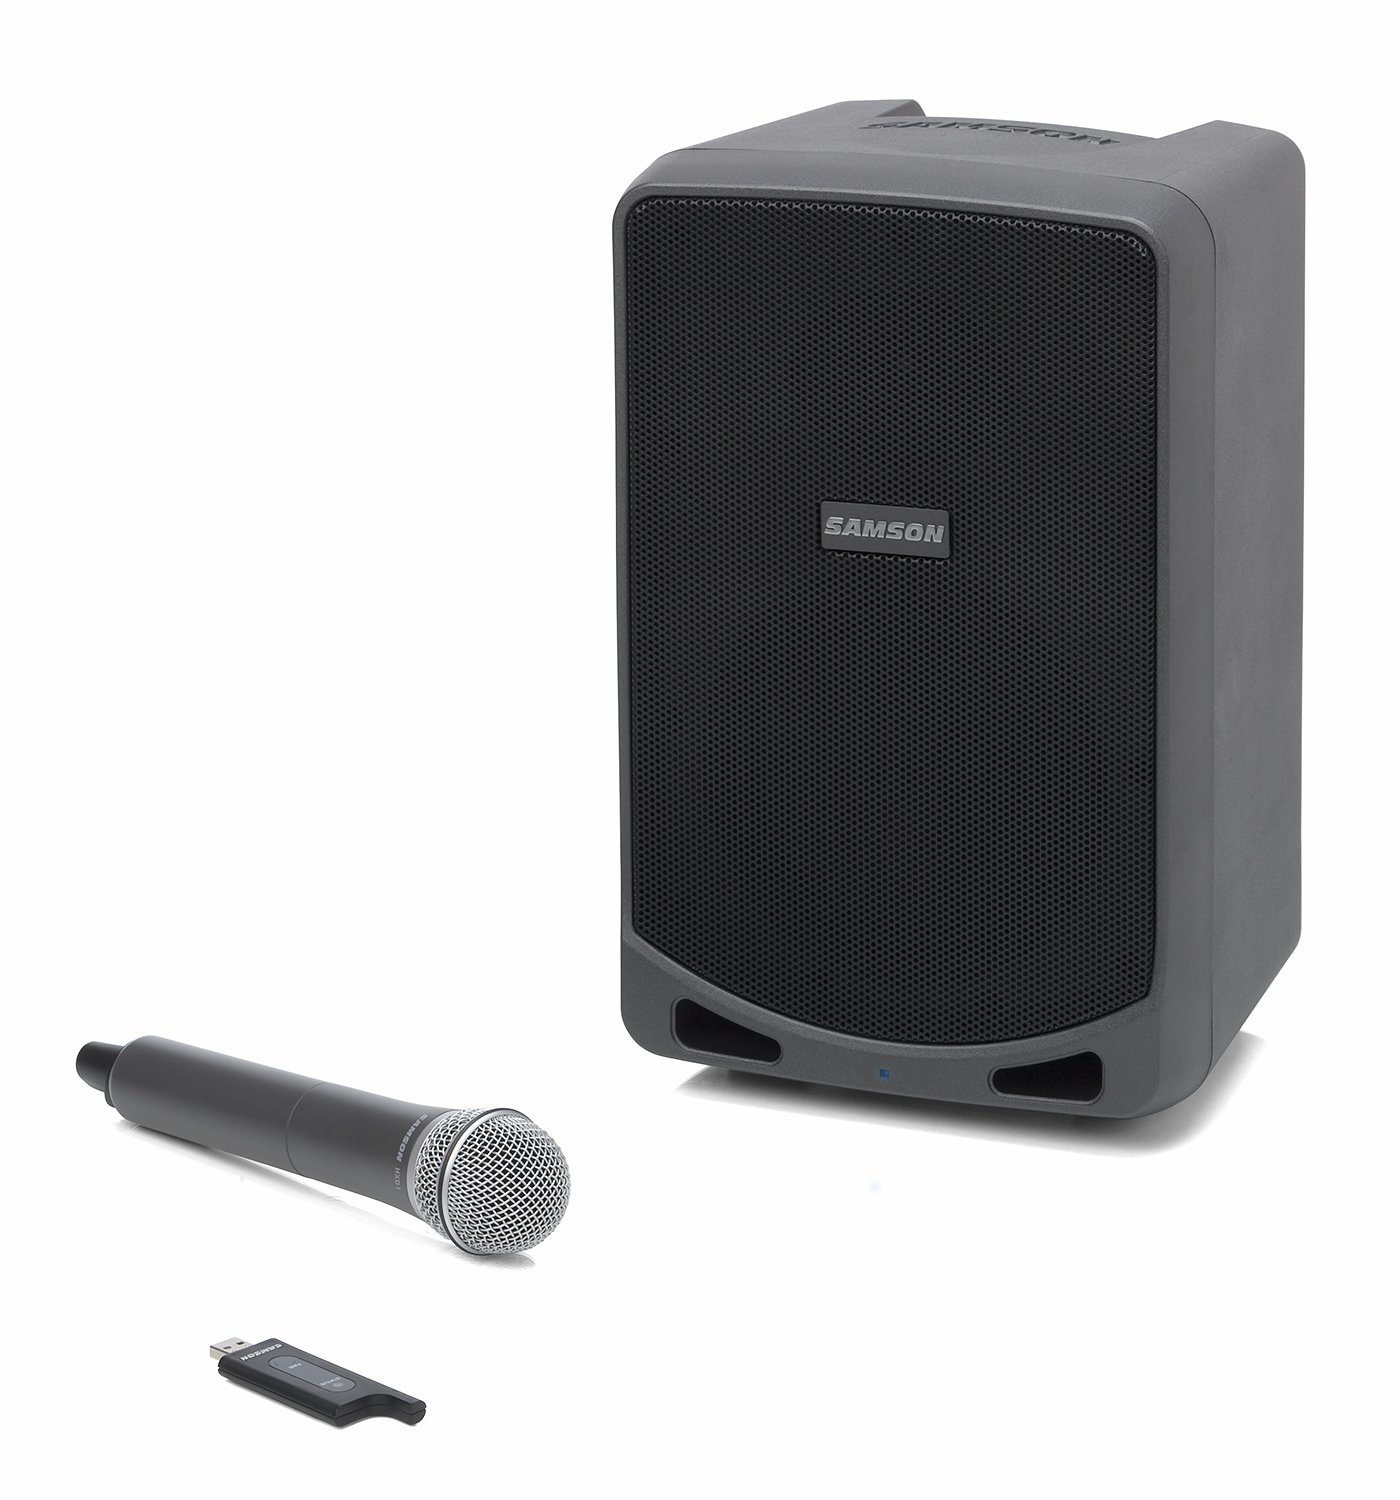 Samson Expedition XP106w Rechargeable Battery Powered Wireless PA with Bluetooth